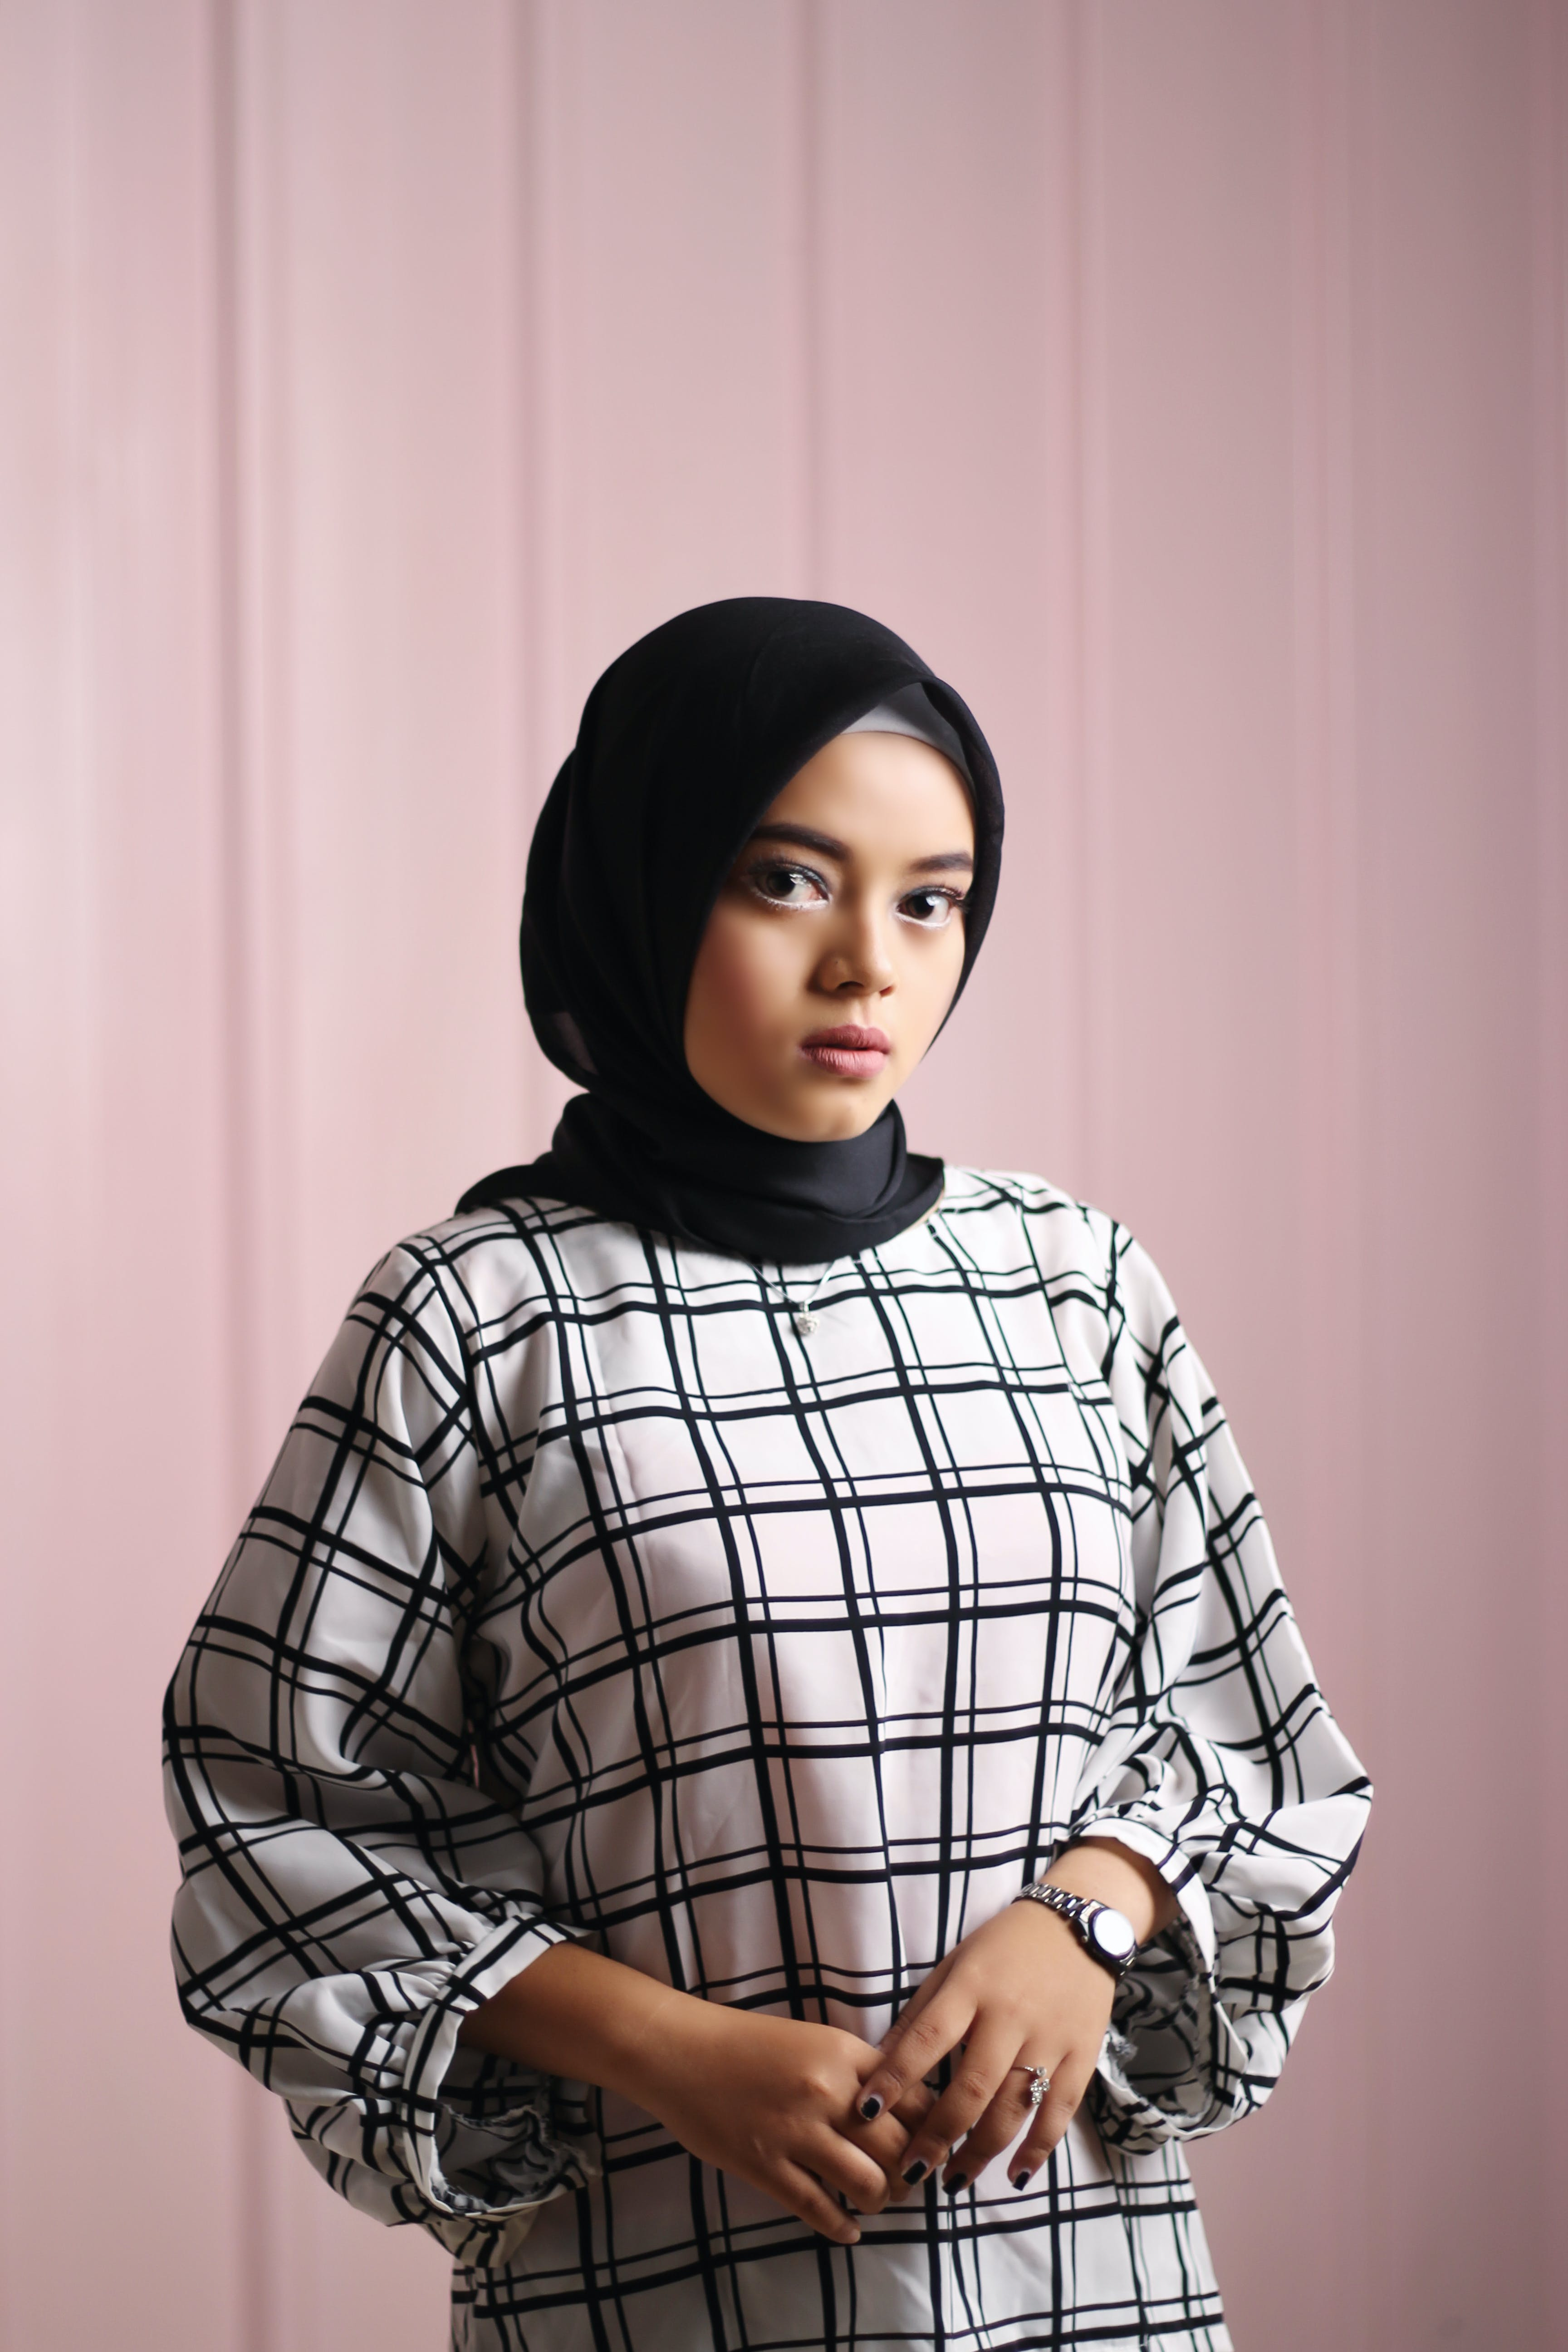 Woman Wearing White and Black Grid Pattern Dress and Black Hijab Standing Near Wall